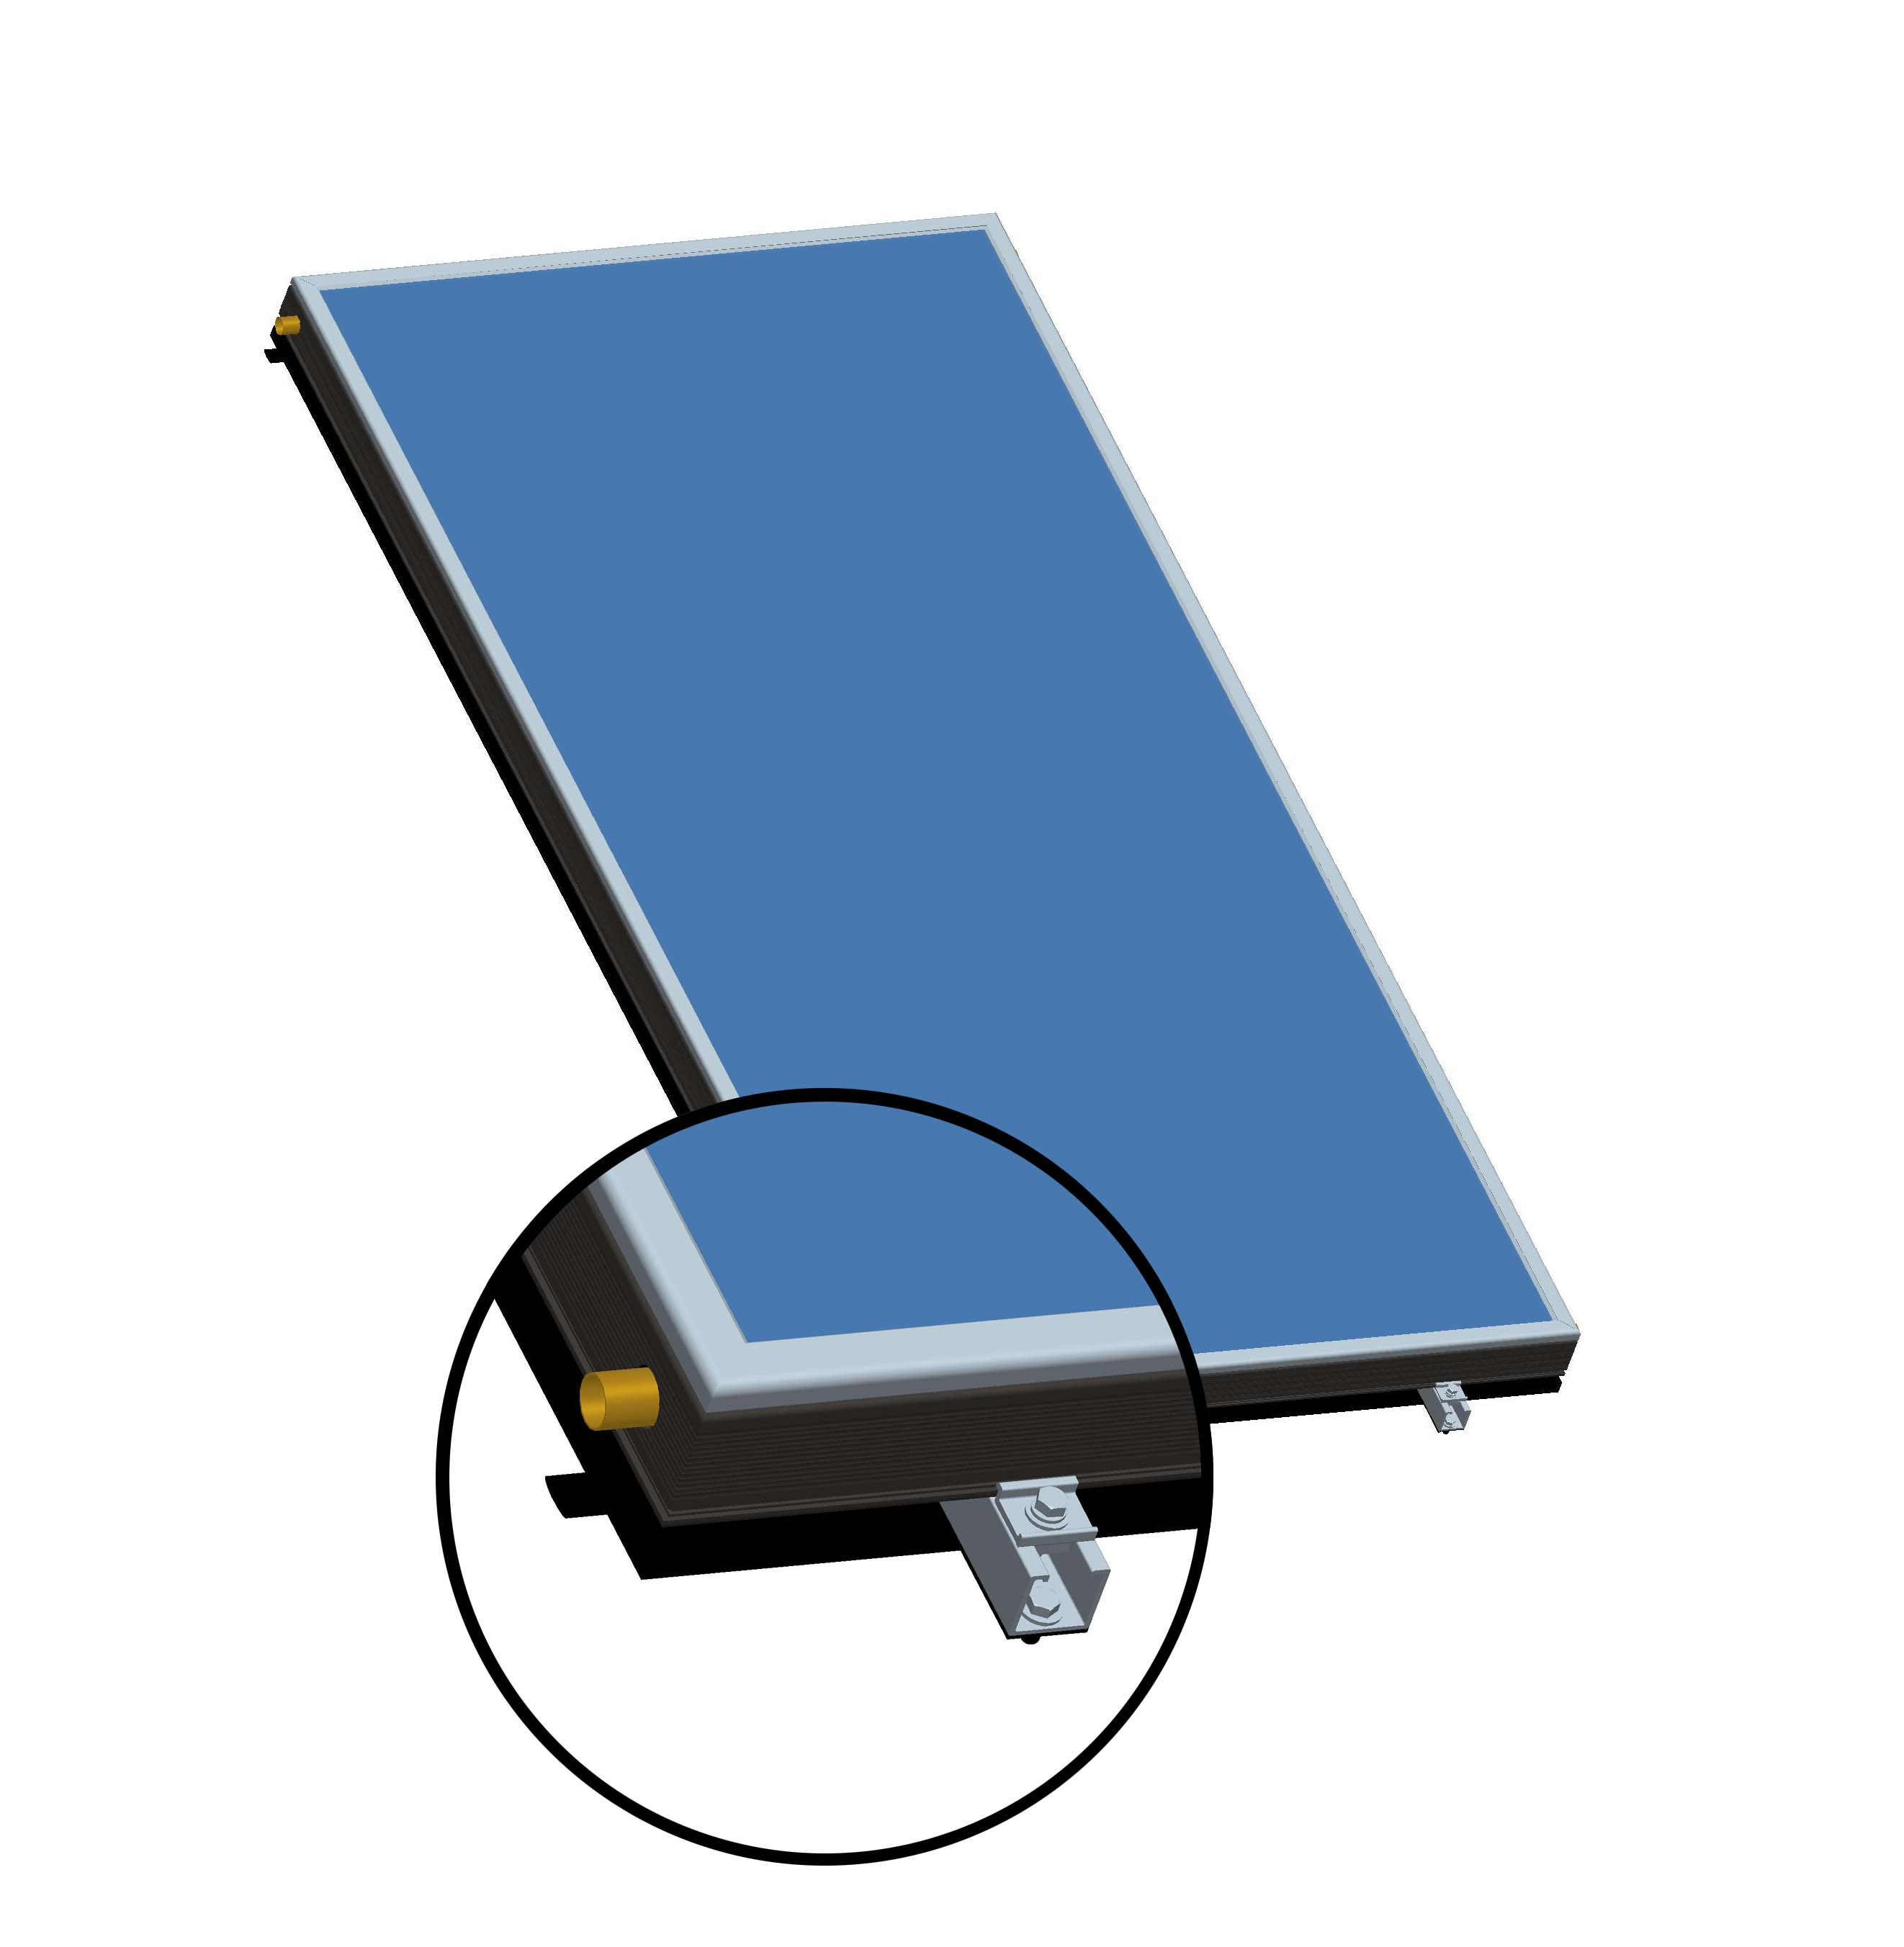 Instruction Manuals For Guidance Of User To Install Solar